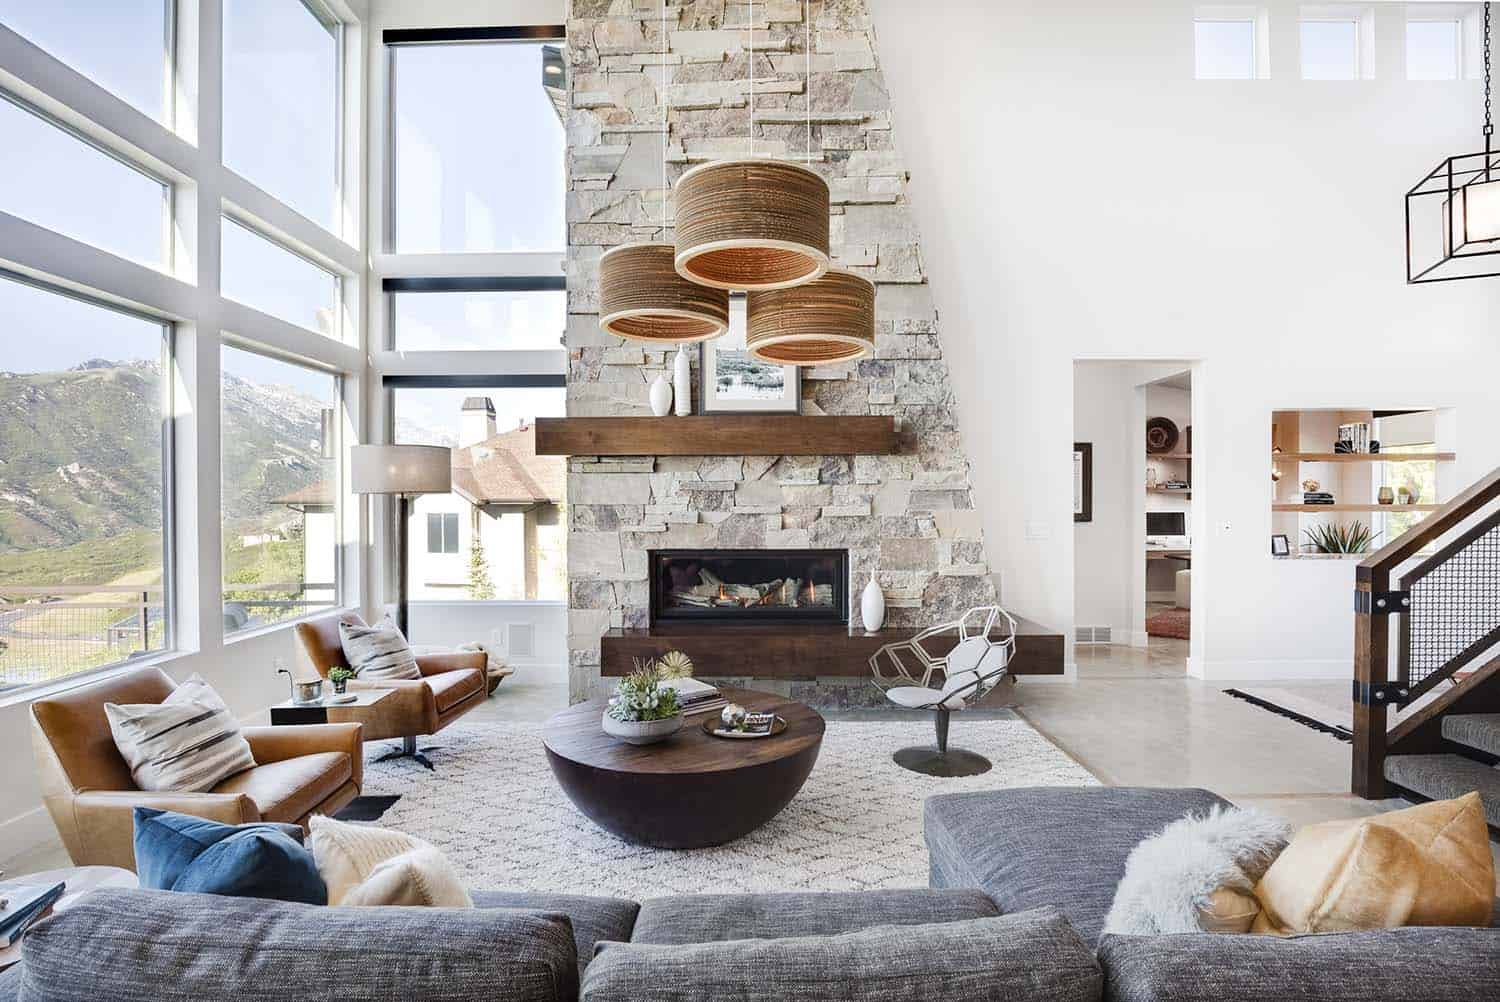 Luminous home in Utah blending rustic and modern details